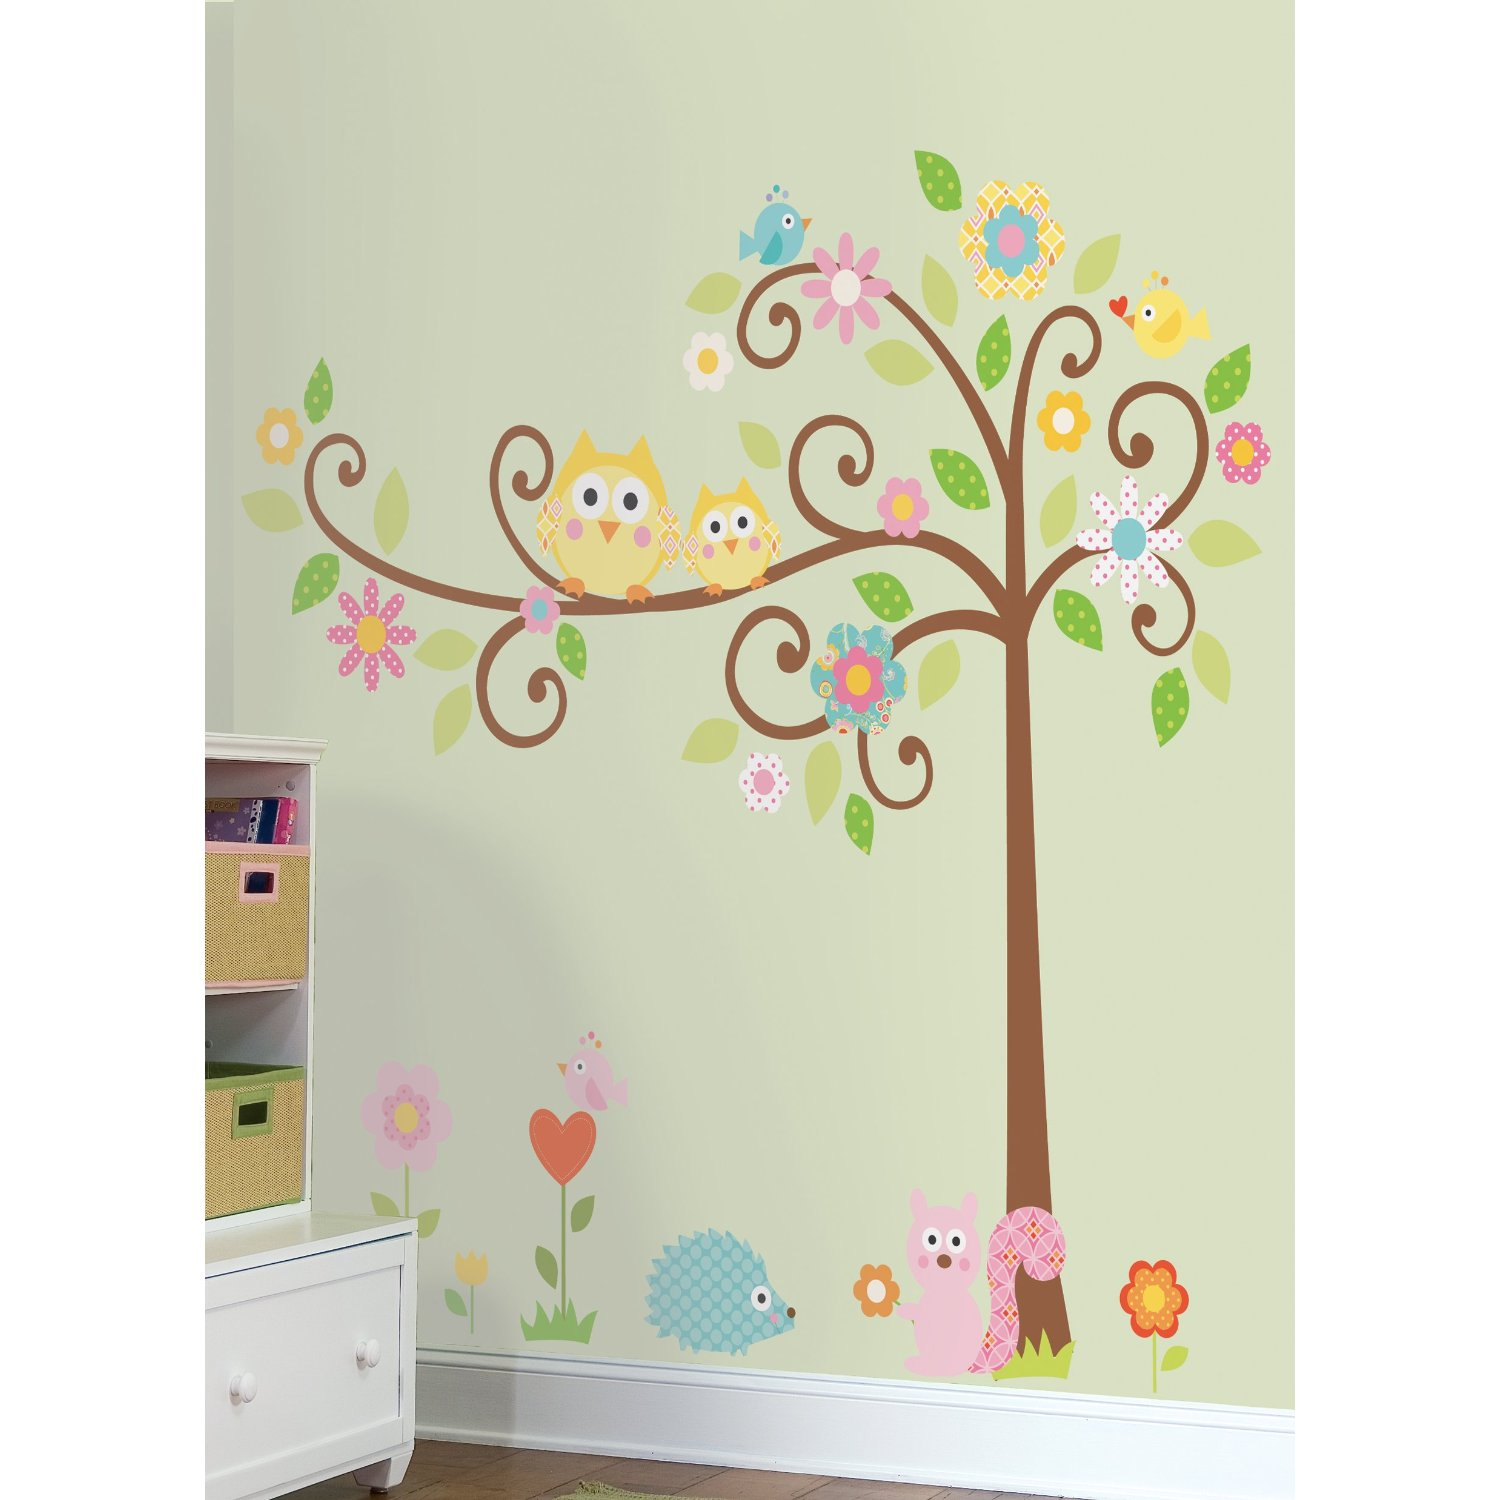 Nursery room ideas nursery wall decals for Baby mural ideas